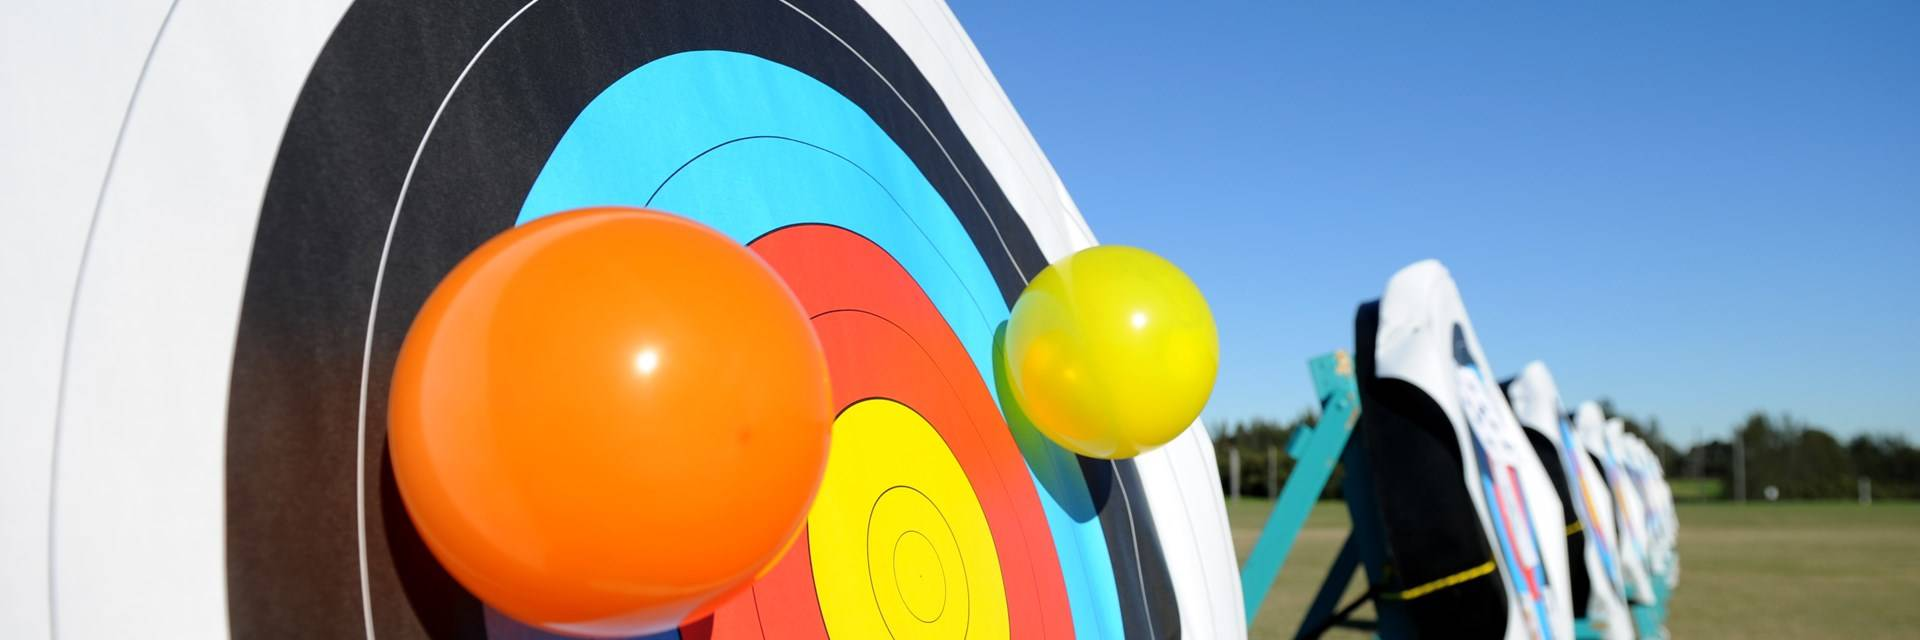 Sydney Olympic Park Archery Centre - Parties - Photography by Delly Carr